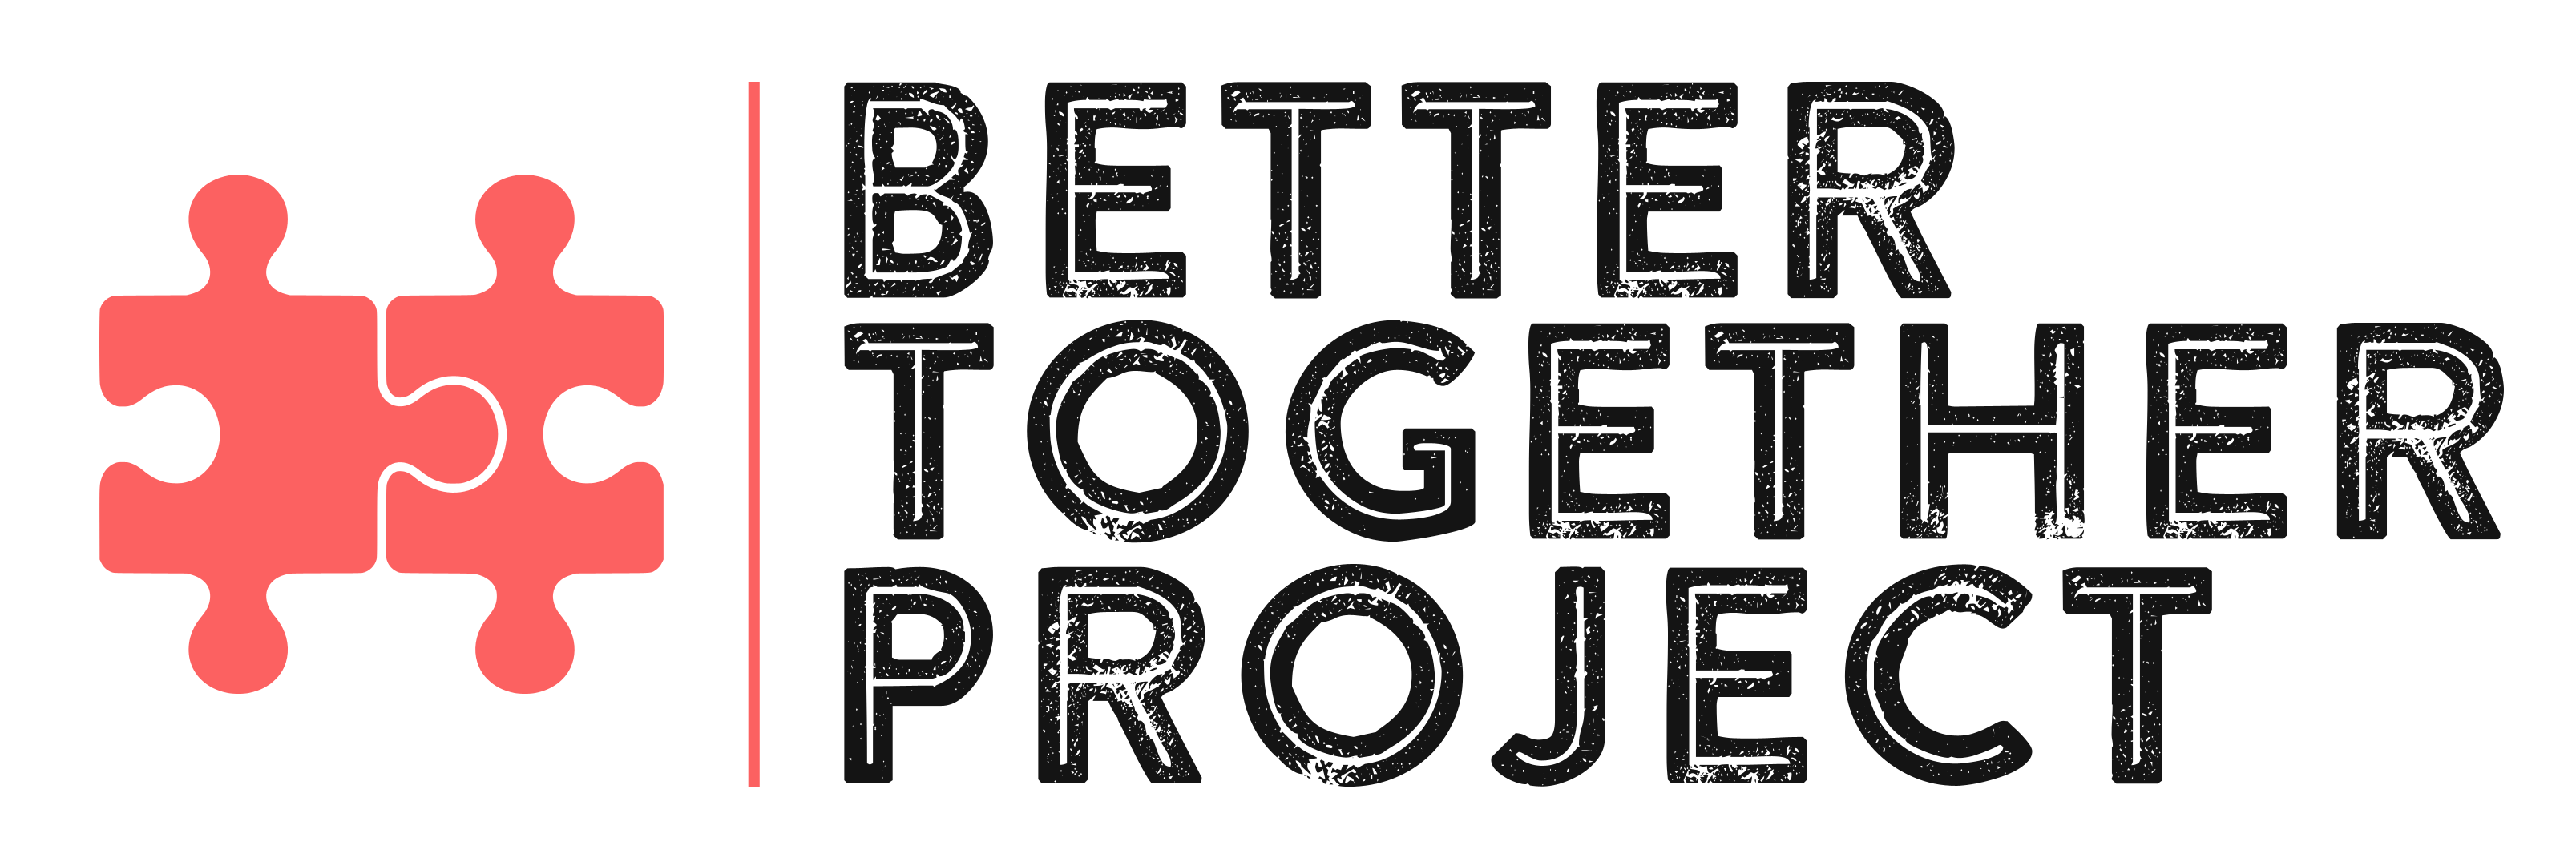 Better Together Project